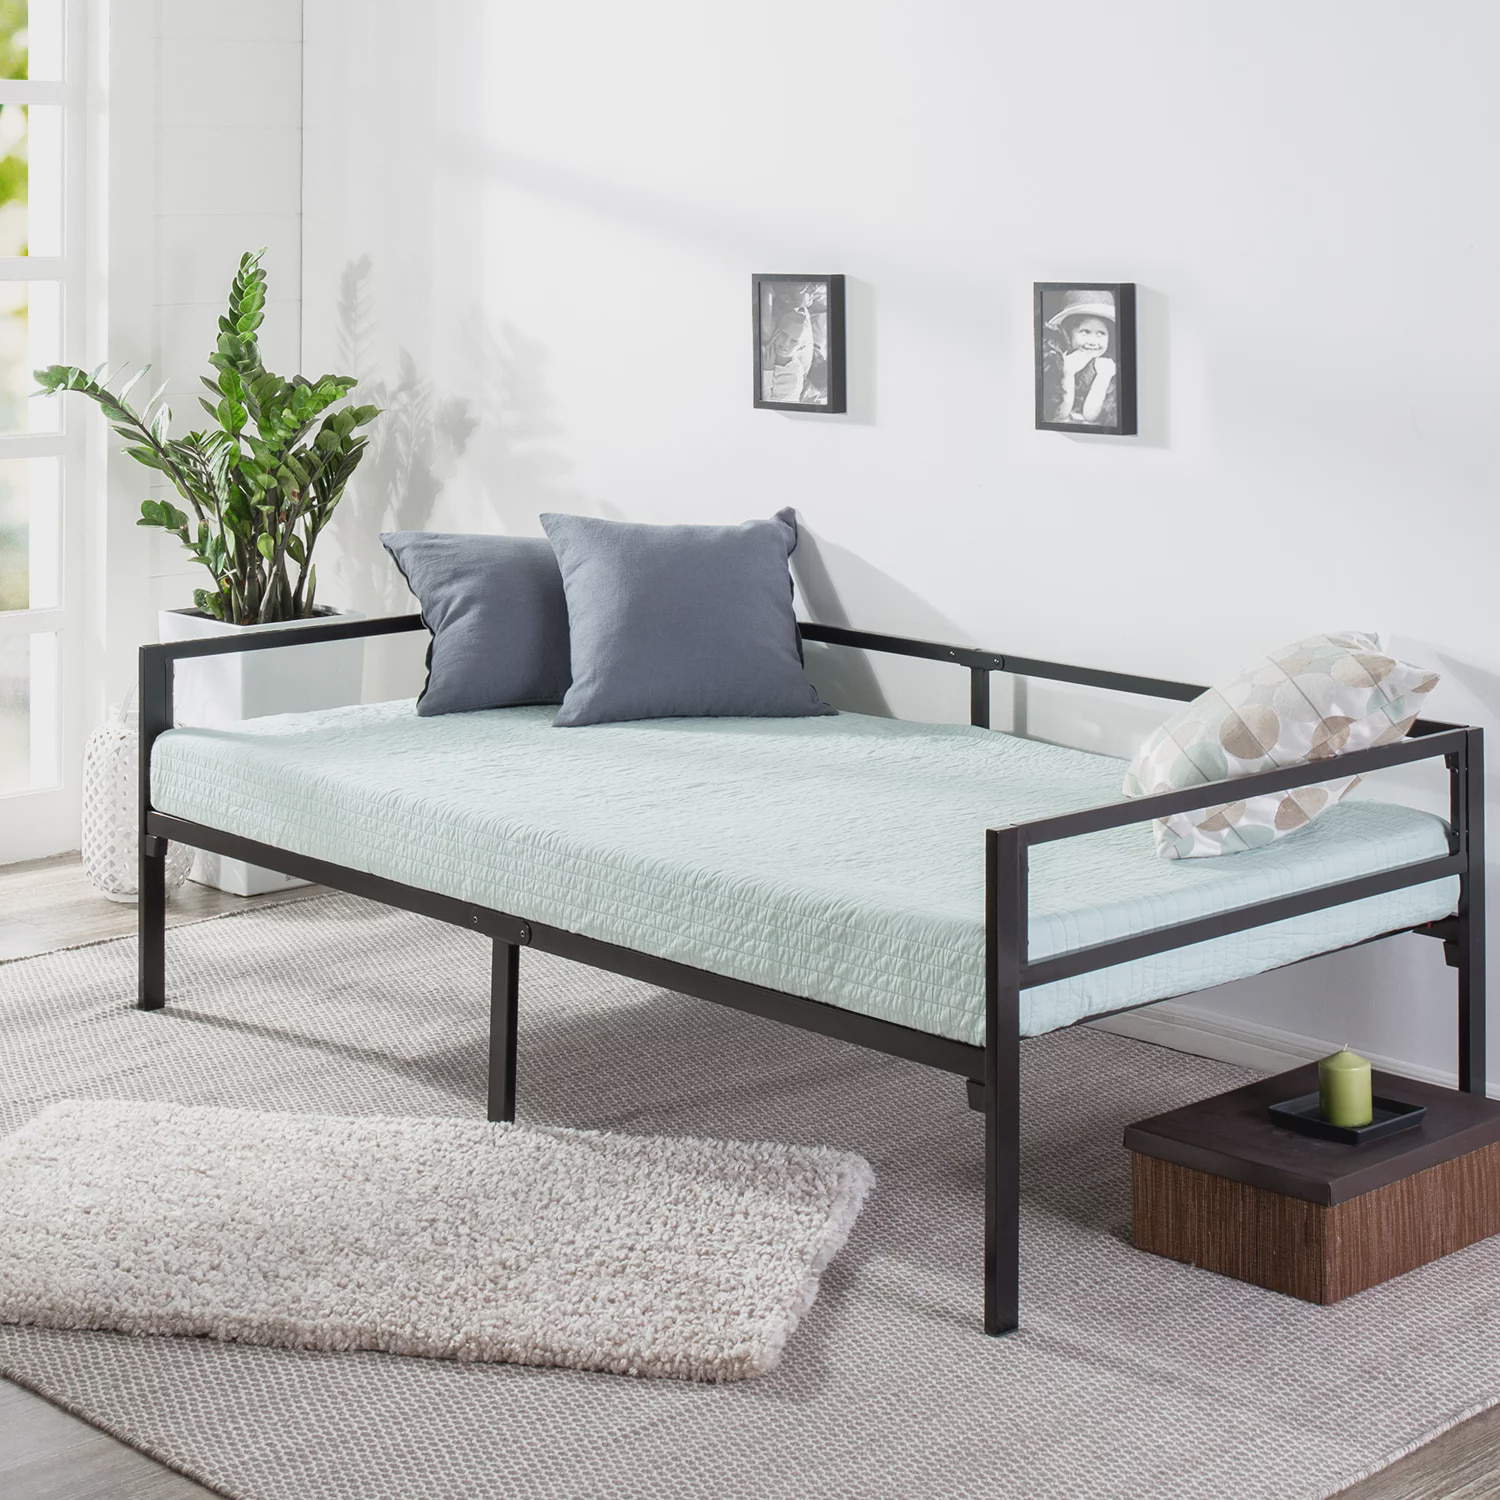 - Mainstays Quick Lock Steel Support Twin Daybed Frame - Walmart.com